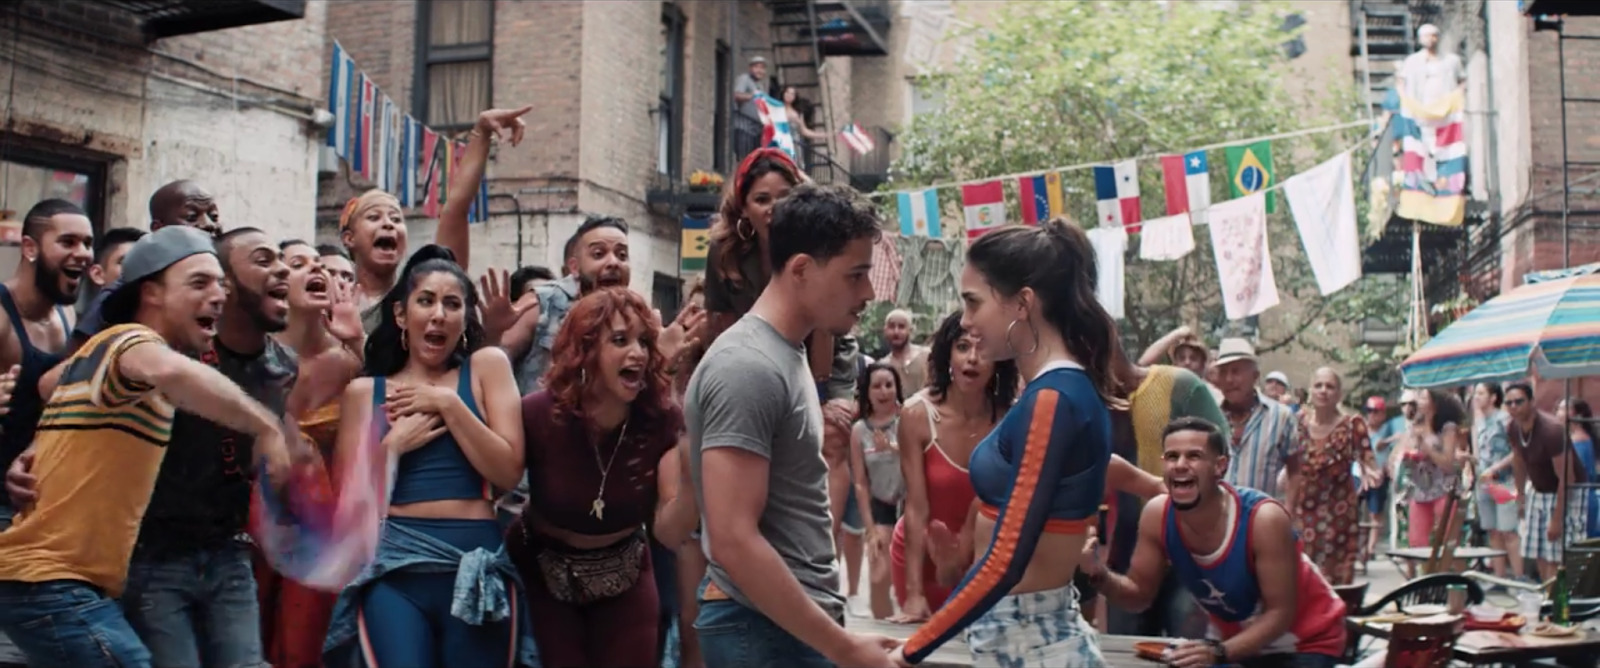 In the Heights movie screenshot